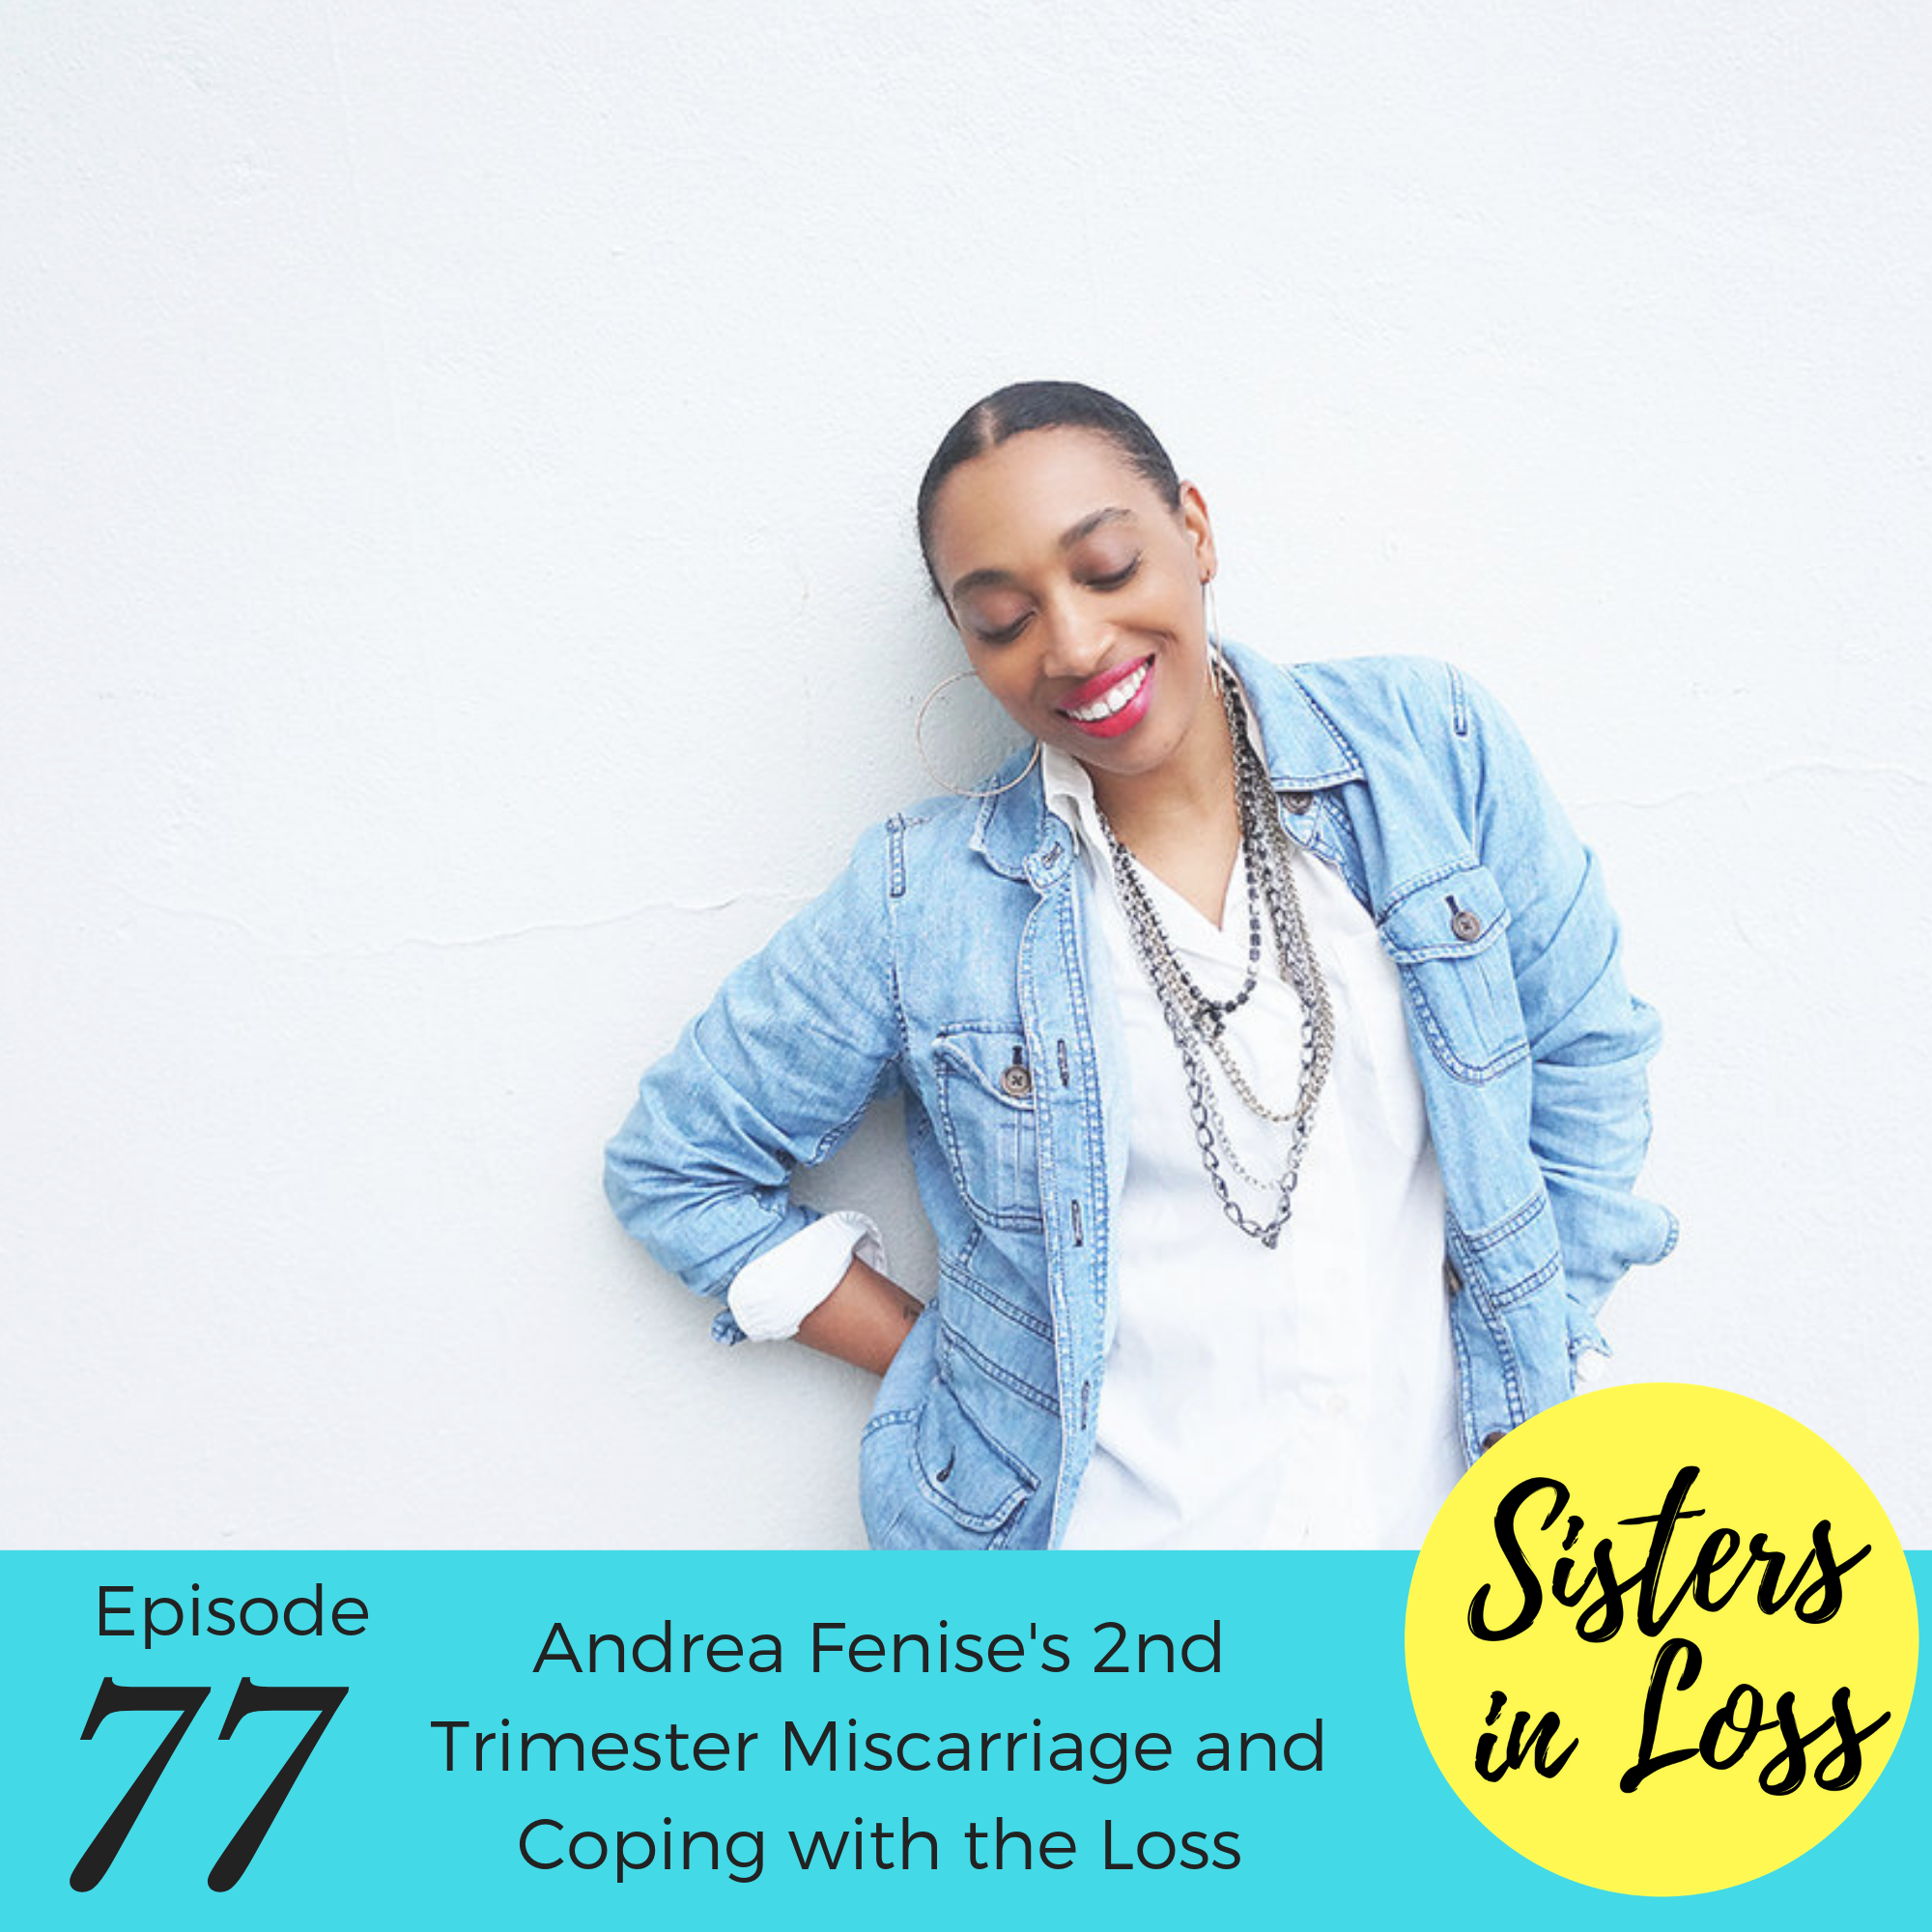 Andrea Fenise Memphis Fashion Blogger shares Miscarriage Story and Journey with Sisters in Loss Podcast